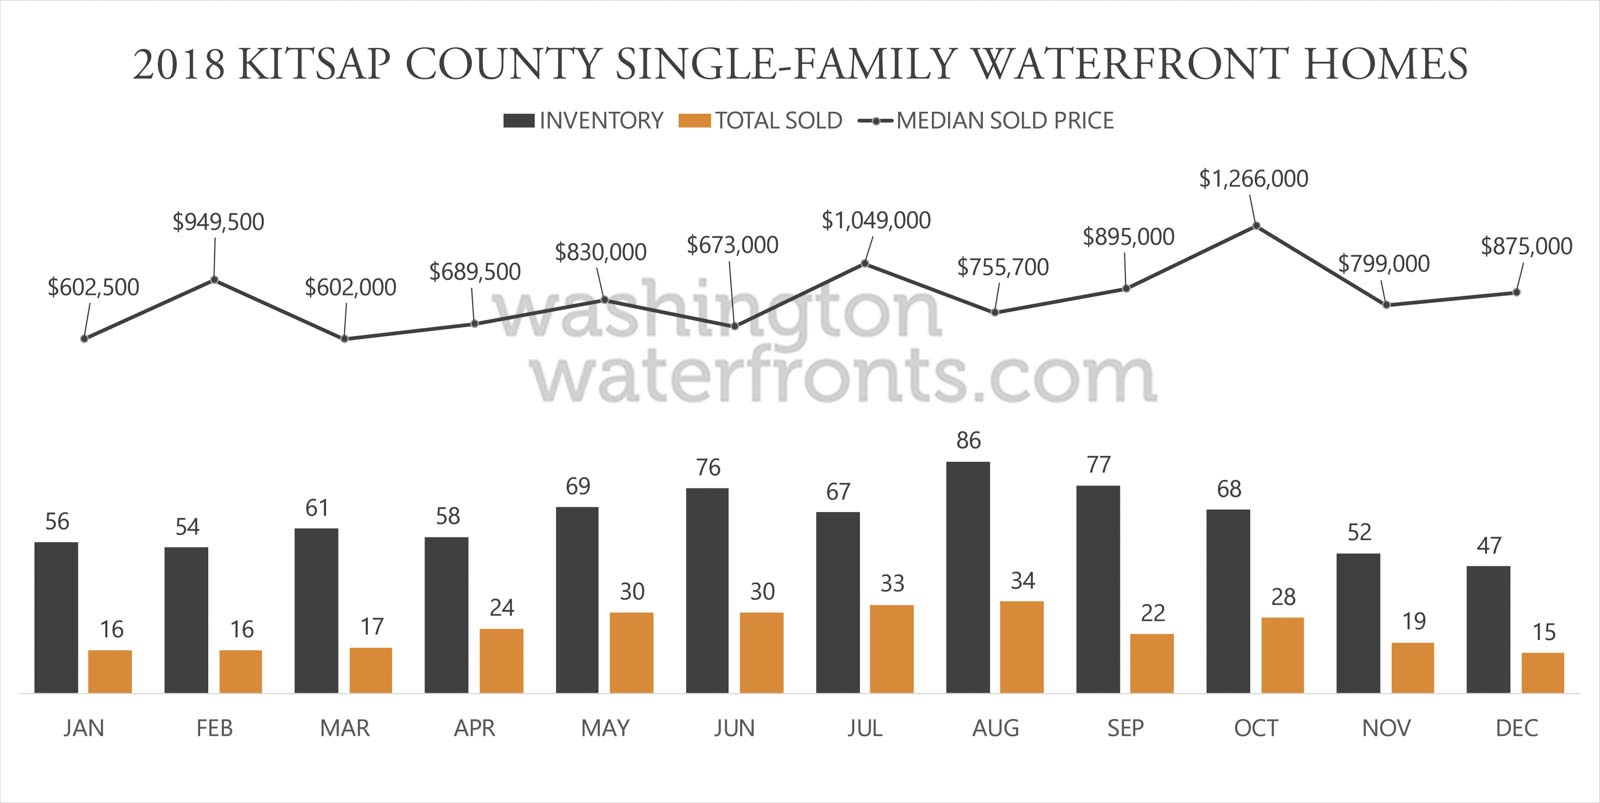 Kitsap County Waterfront Inventory